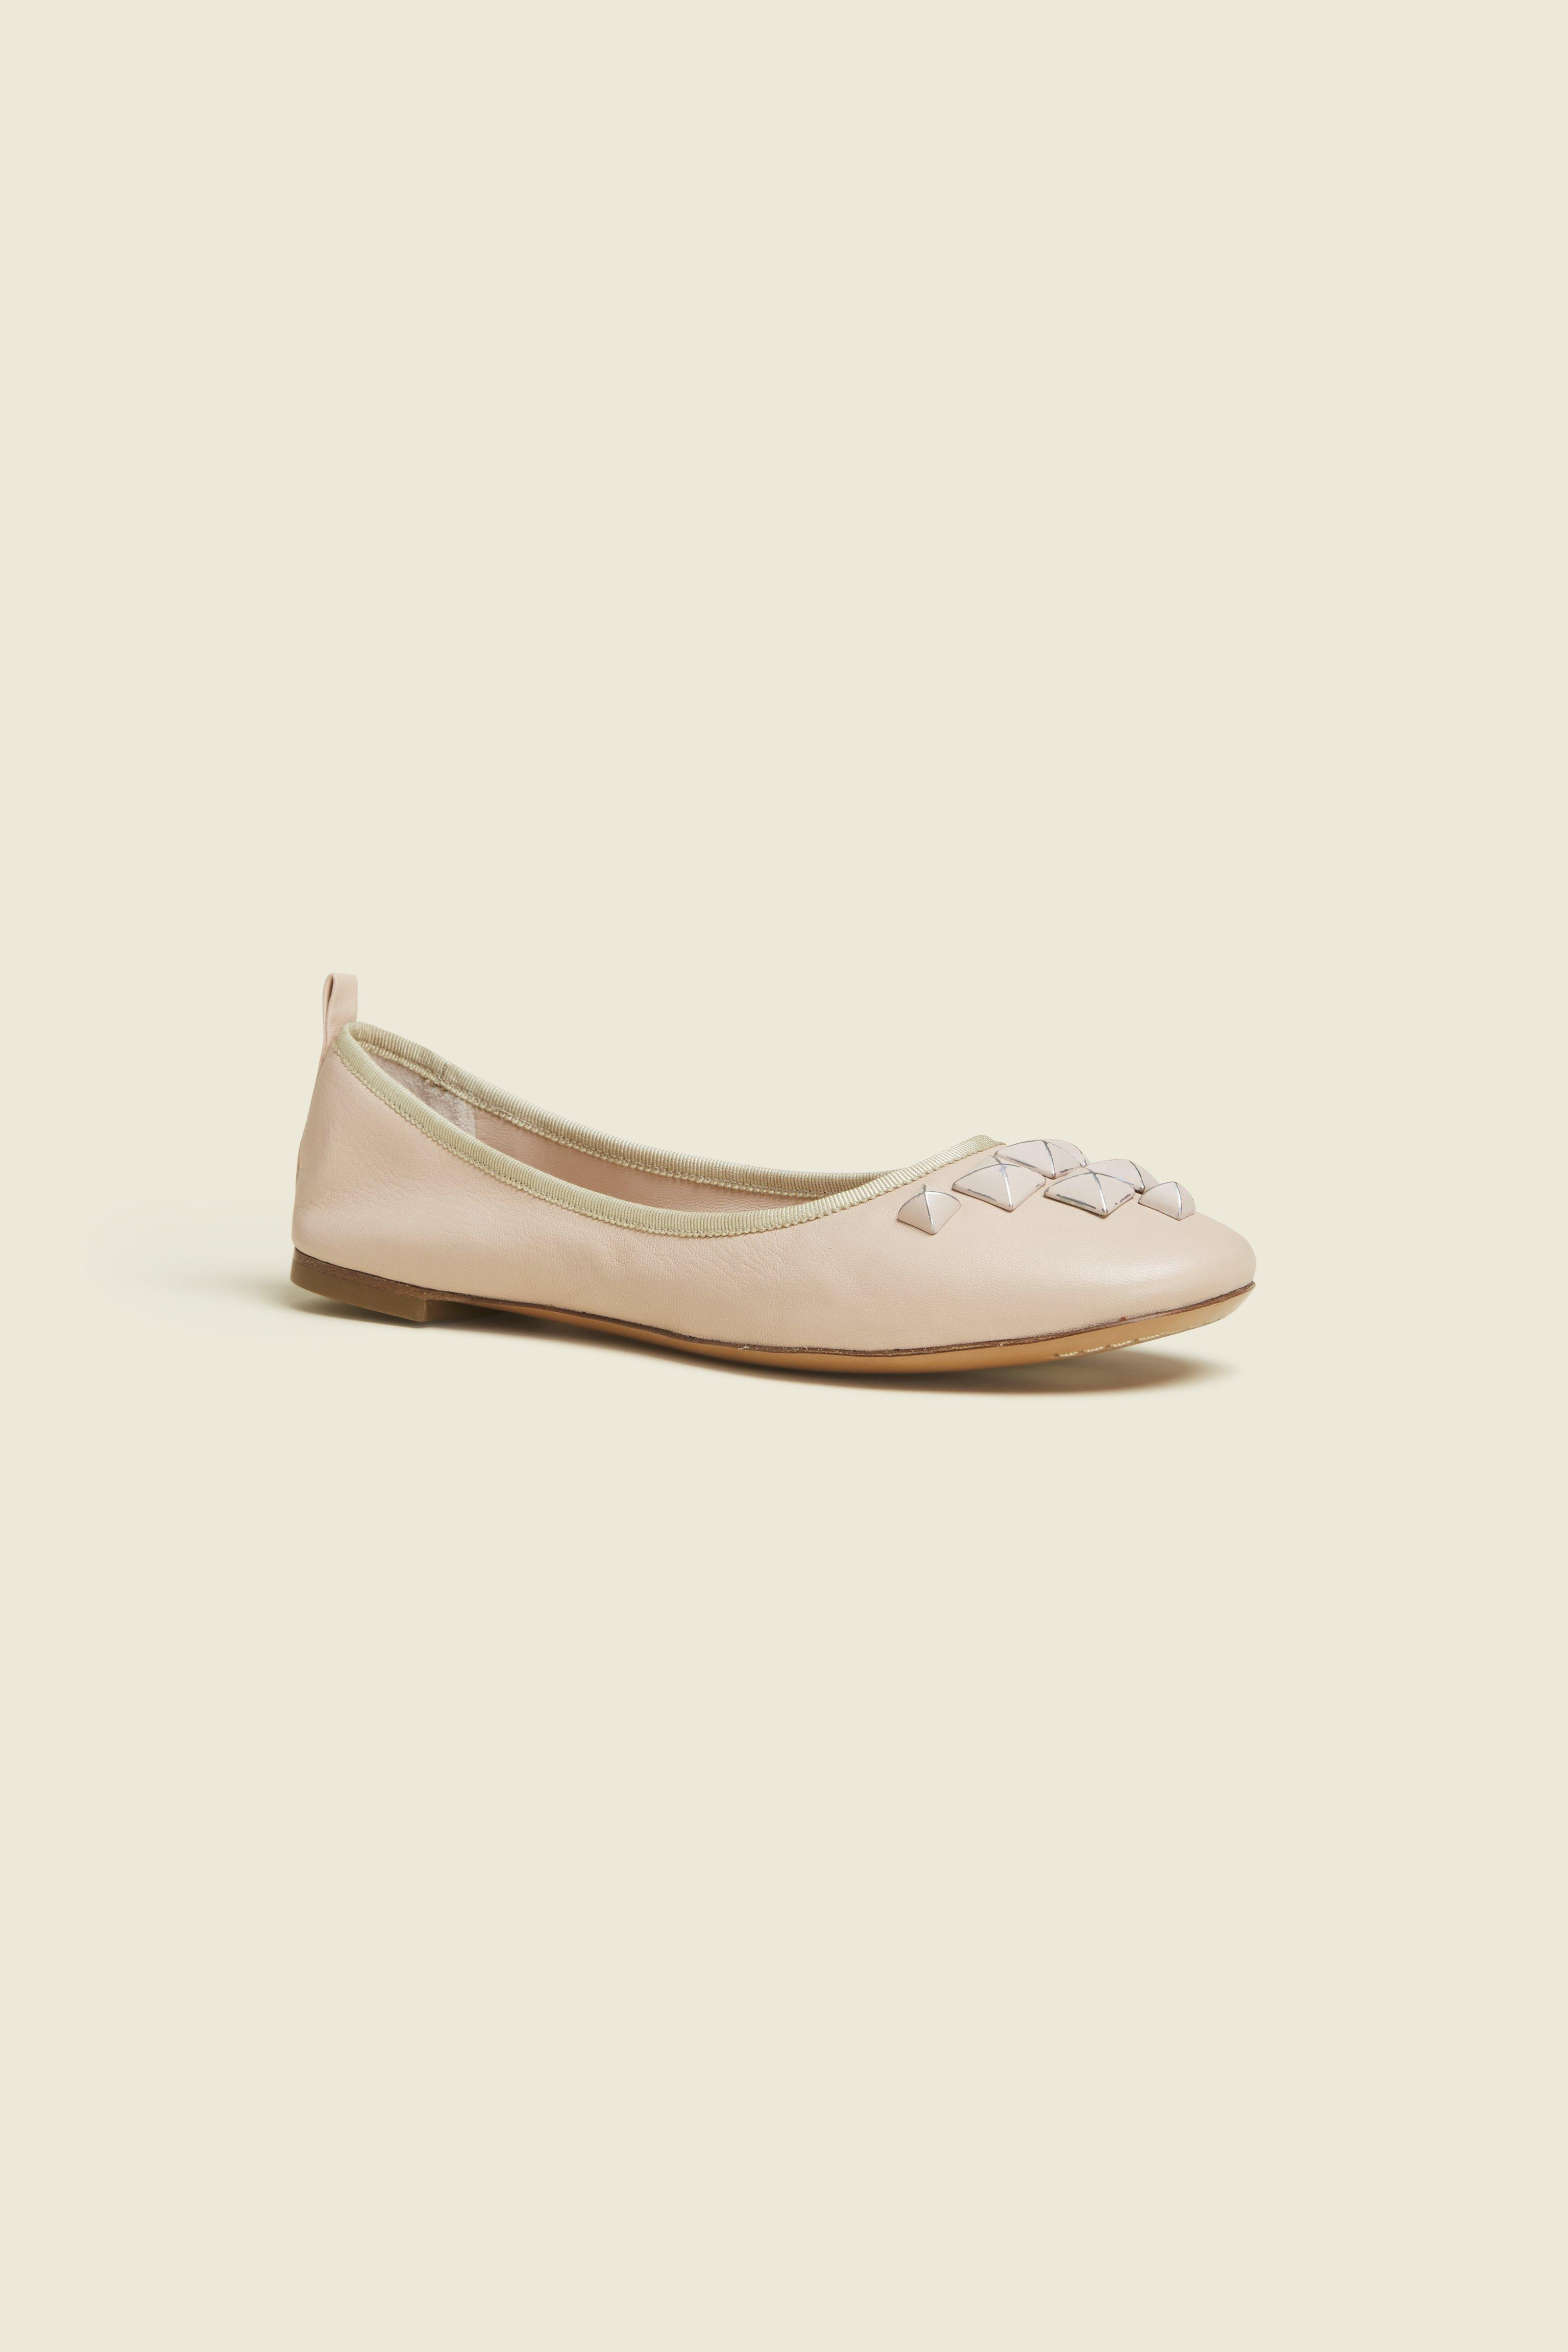 4b8b540b Cleo Studded Leather Ballet Flats, Nude